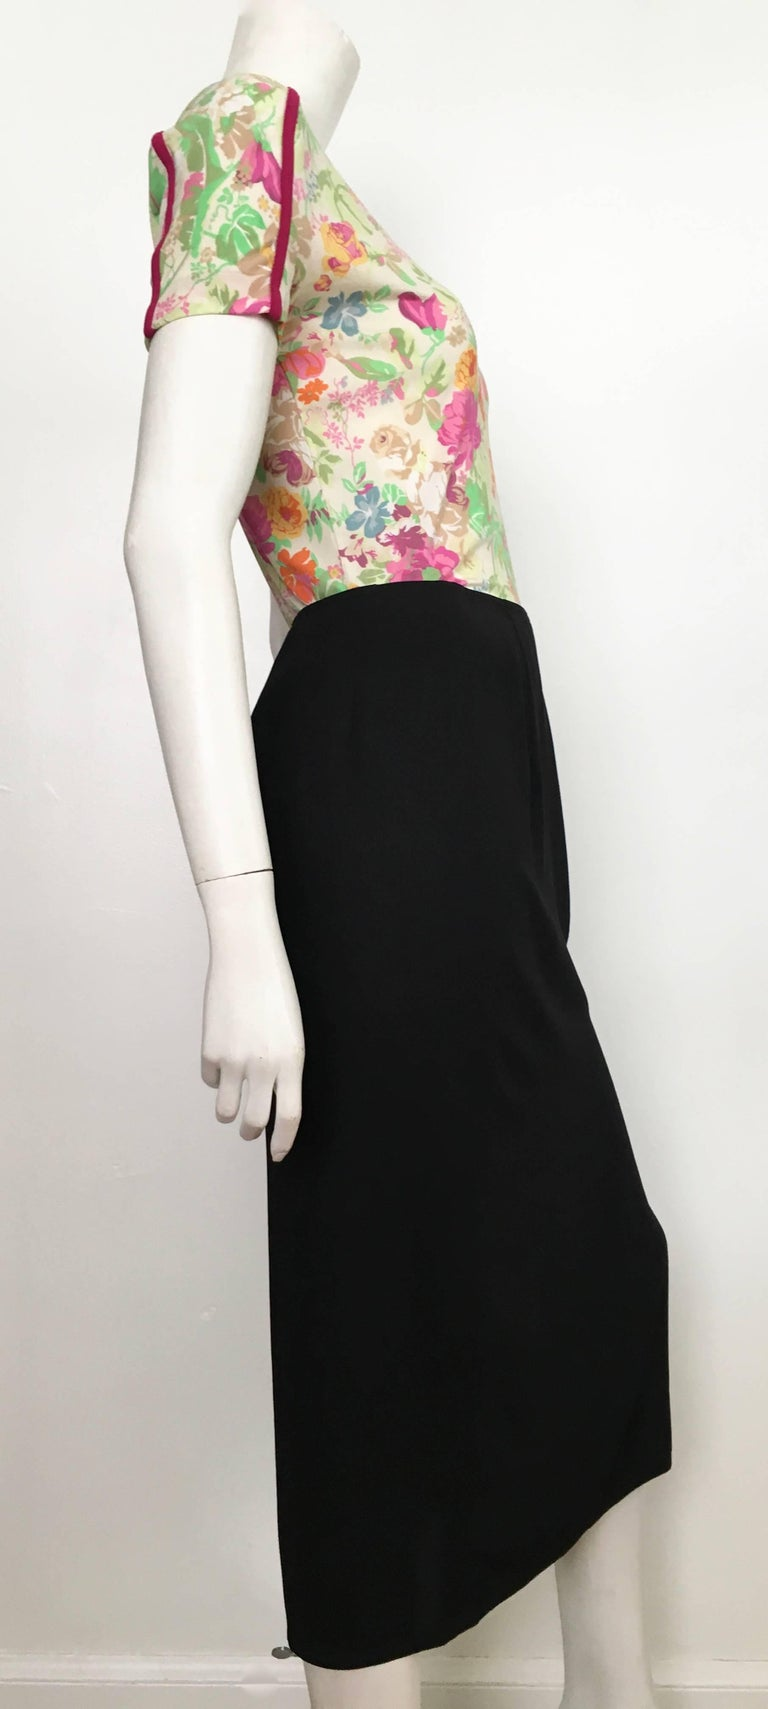 Donna Karan 1990s Black Wool Long Skirt Made in Italy Size 6. In Excellent Condition For Sale In Atlanta, GA